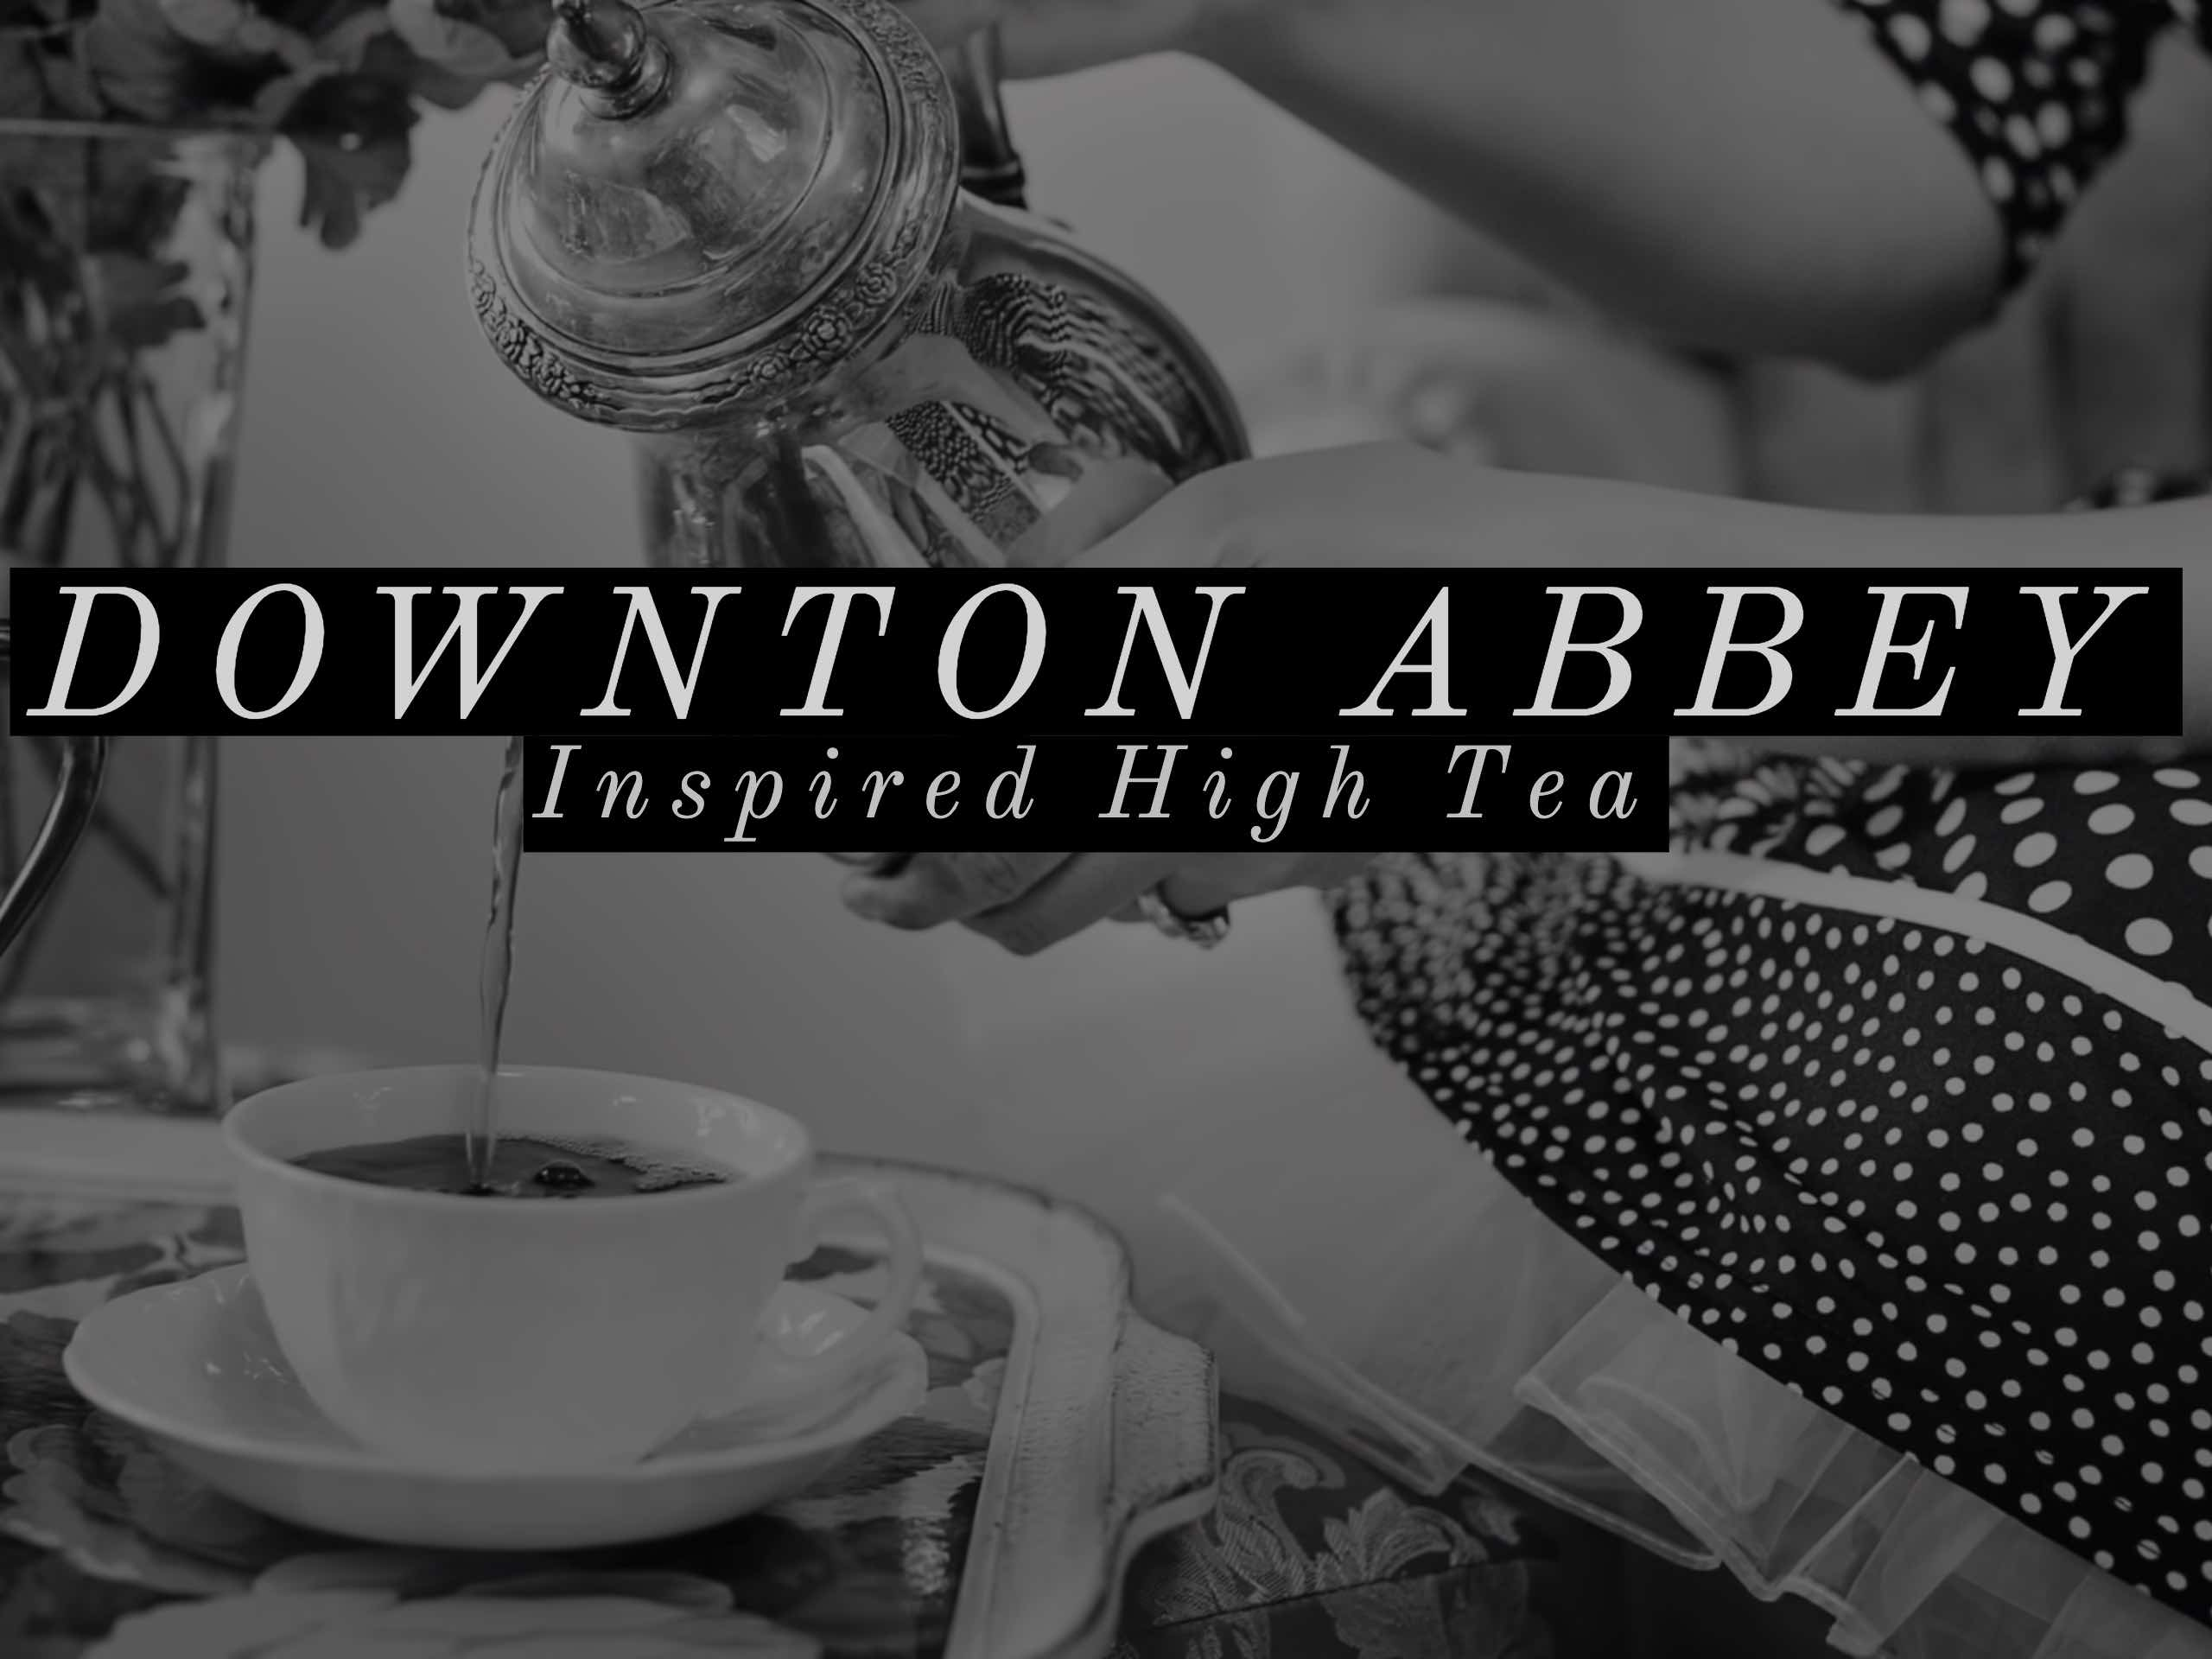 'Downton Abbey' Inspired High Tea